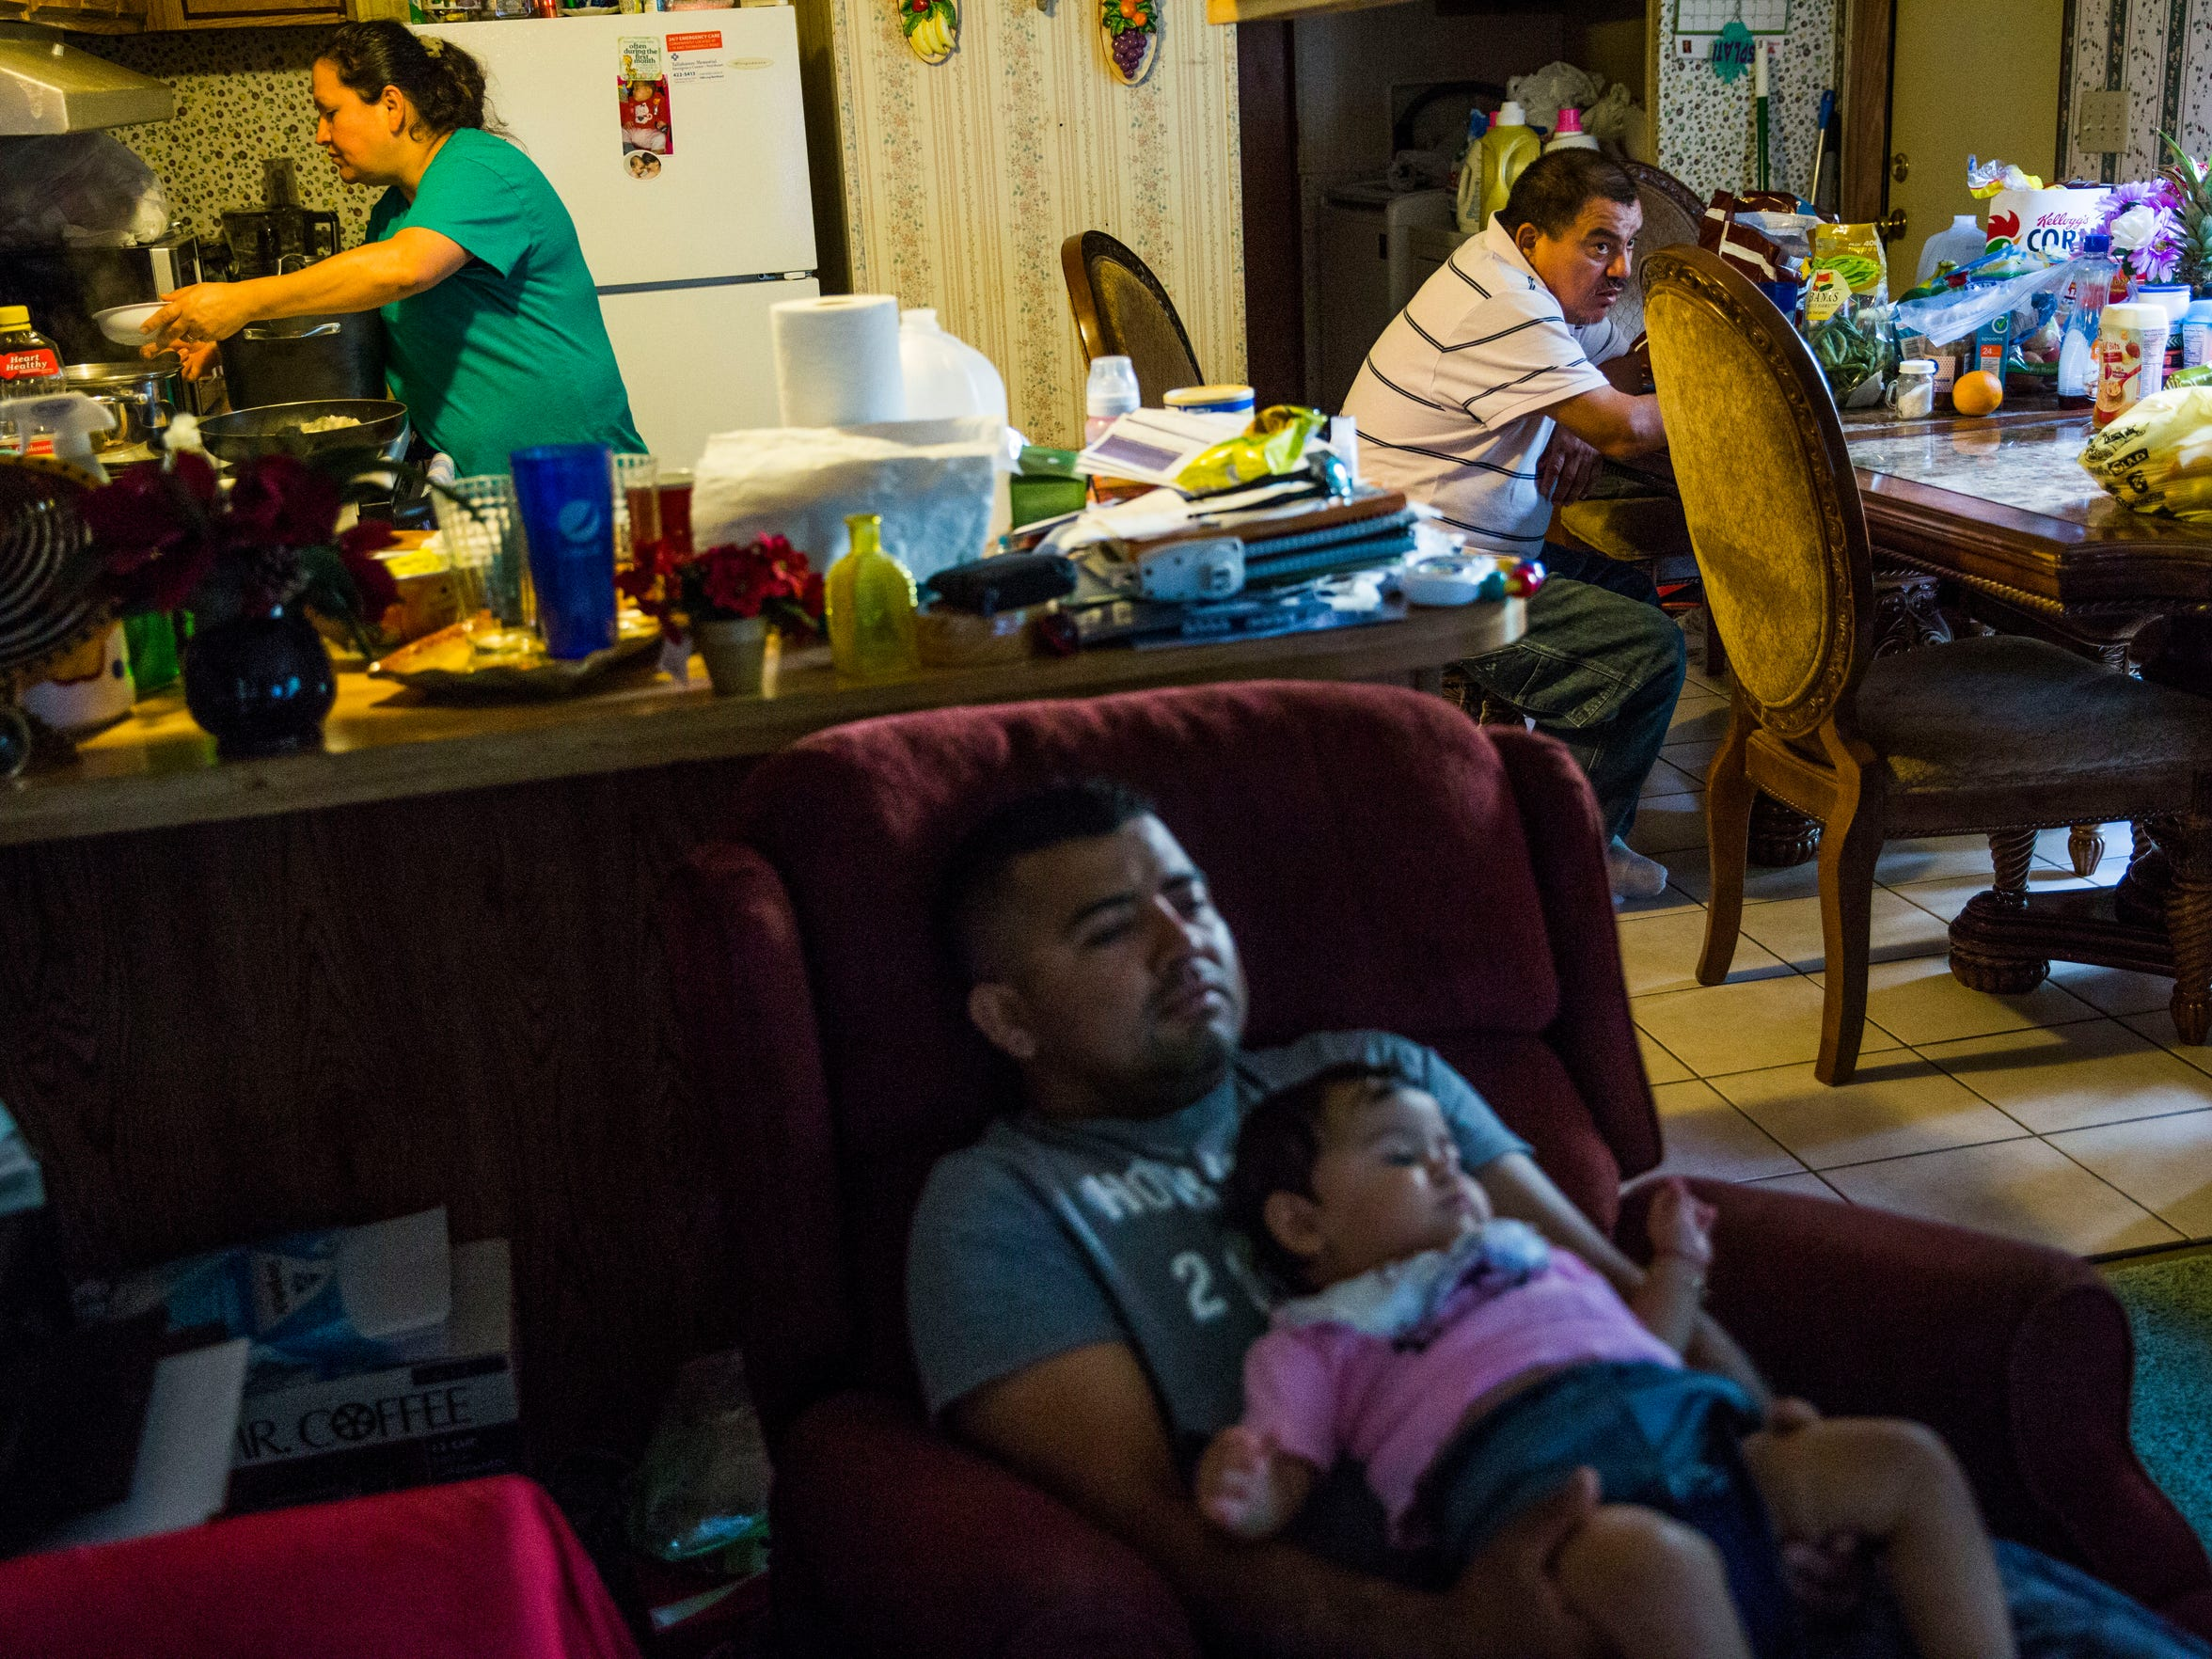 Abednego de la Cruz holds his daughter Jazlyn, 10 months old, while his partner, Blanca Menjivar, prepares dinner in their Chattahoochee, Fla., home on Saturday, July 1, 2017. De la Cruz tries to enjoy time with his family as he faces deportation after a felony arrest for using a false Social Security number to obtain a job. Some Florida companies and insurers report undocumented immigrant workers like de la Cruz after they are injured.